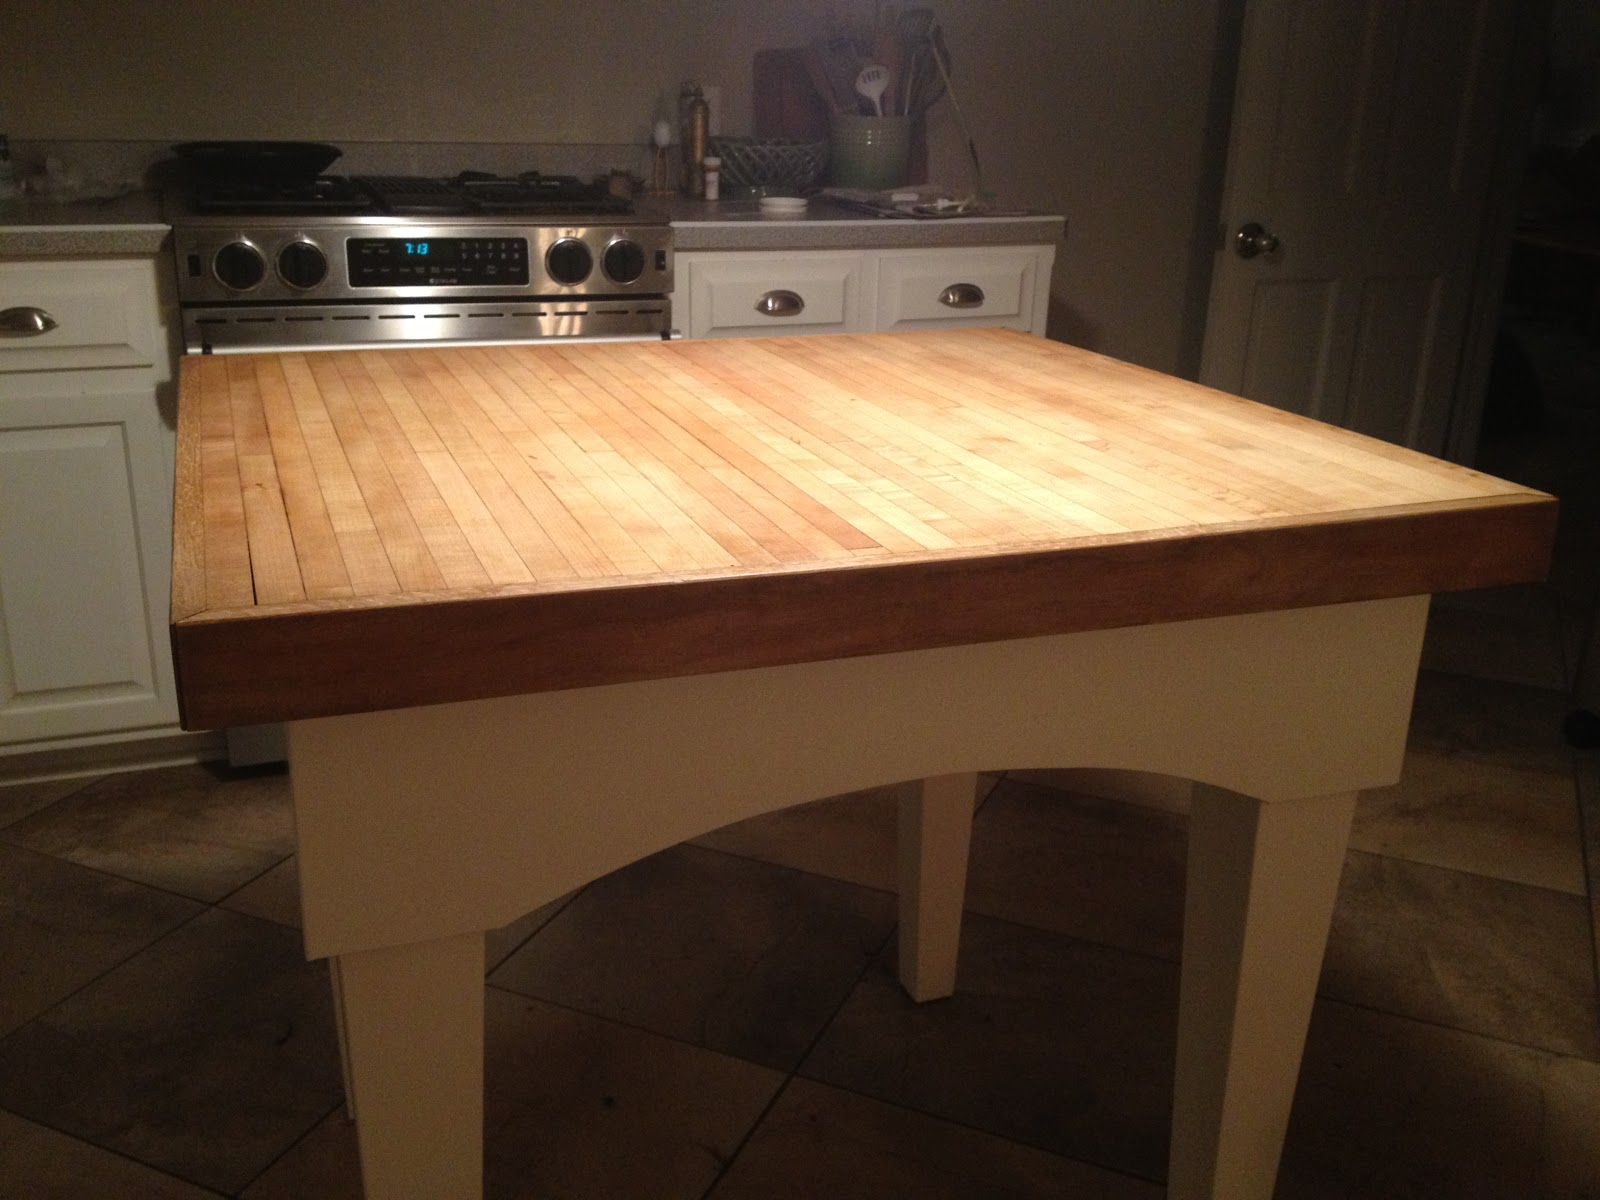 Butcher Block Countertops Care Giveaway Winners And Little Changes That Make A Big